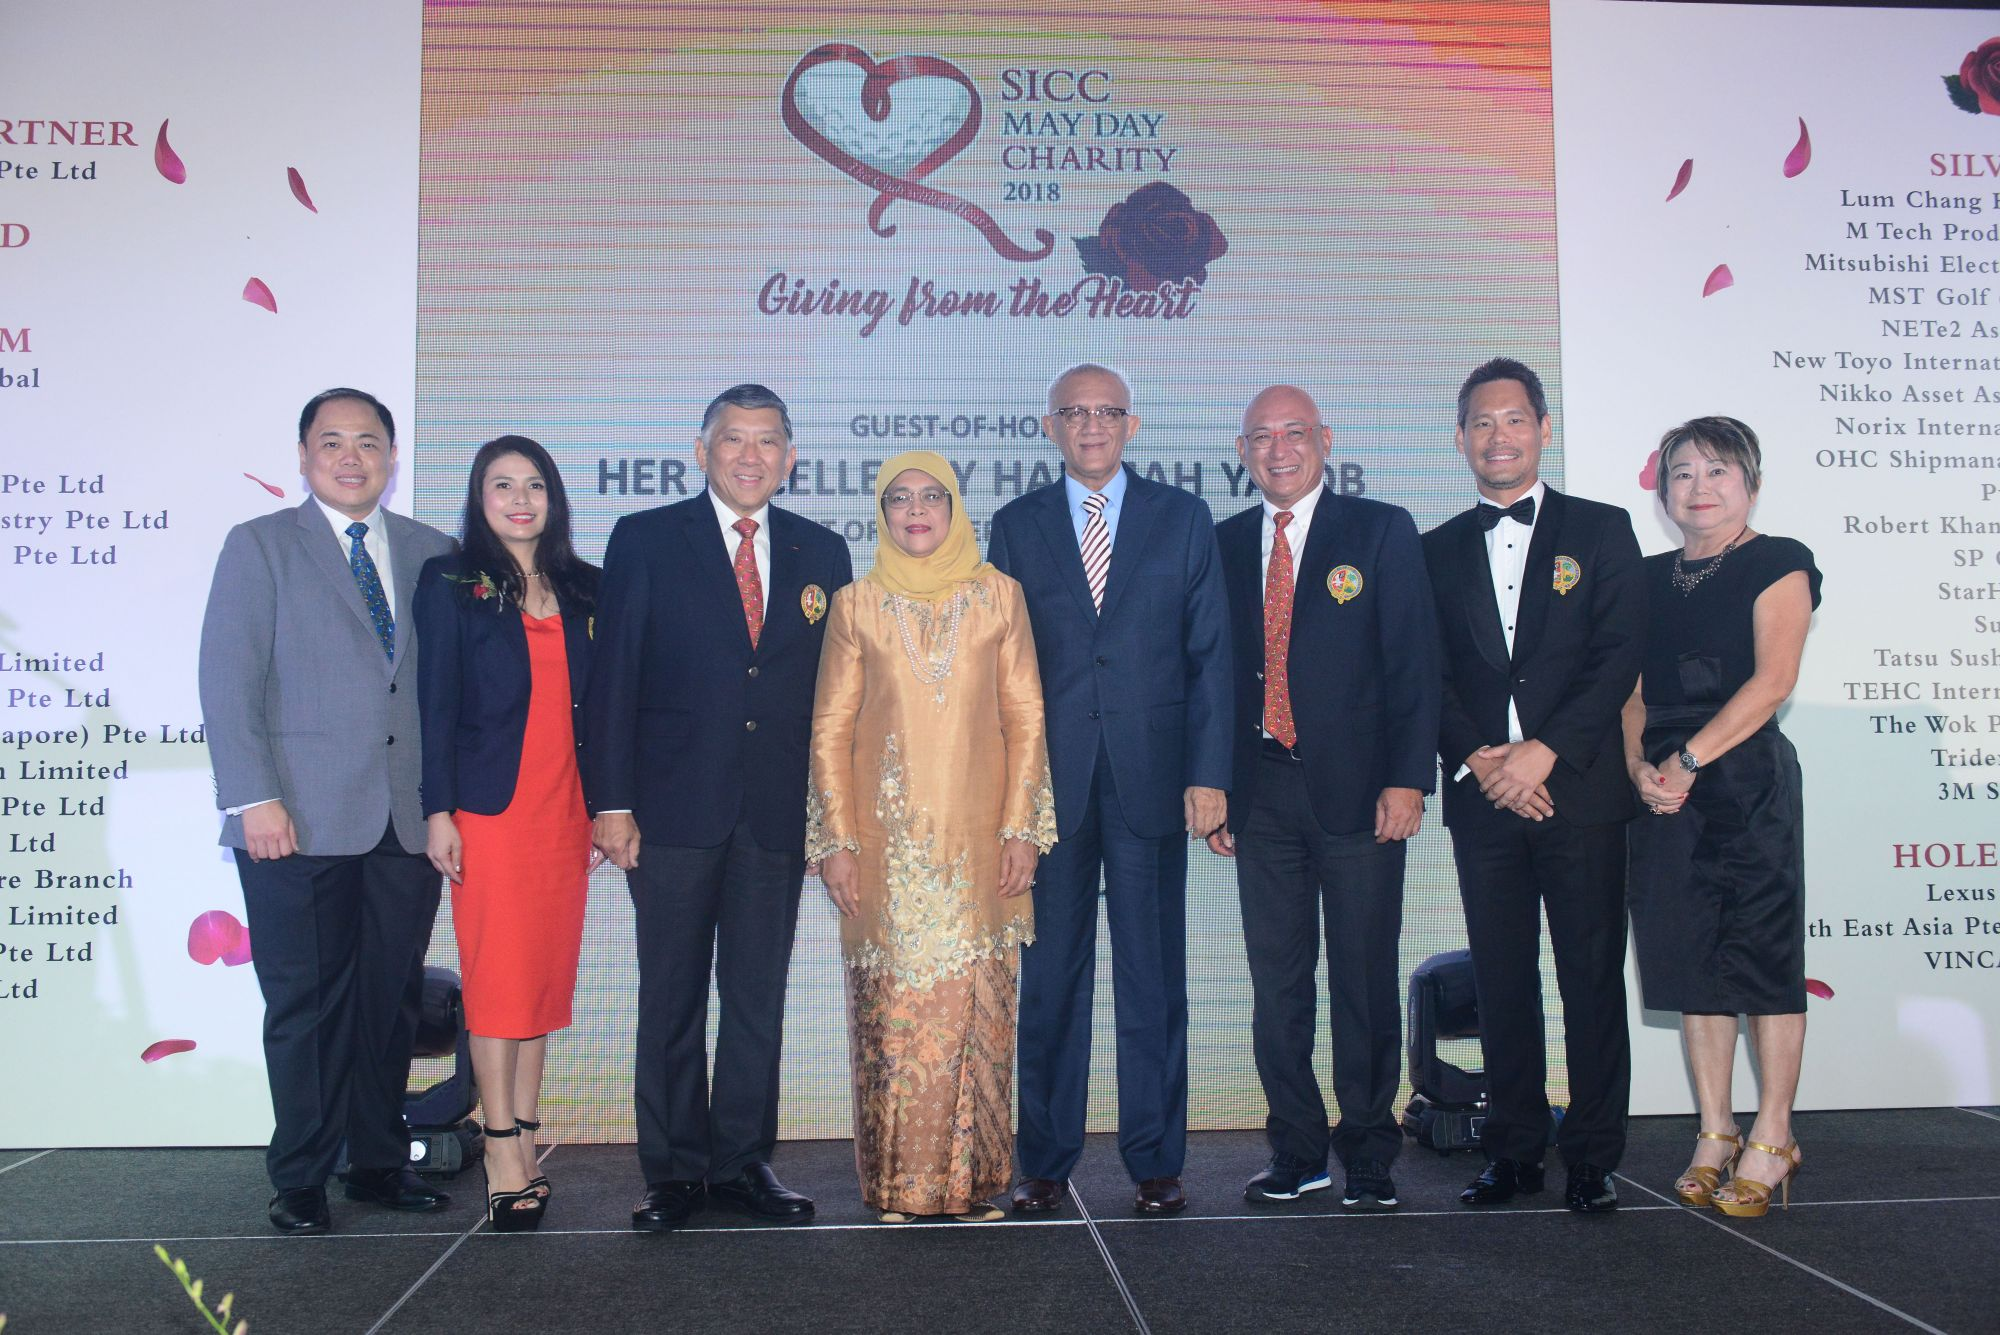 President Halimah Yacob with the SICC committee